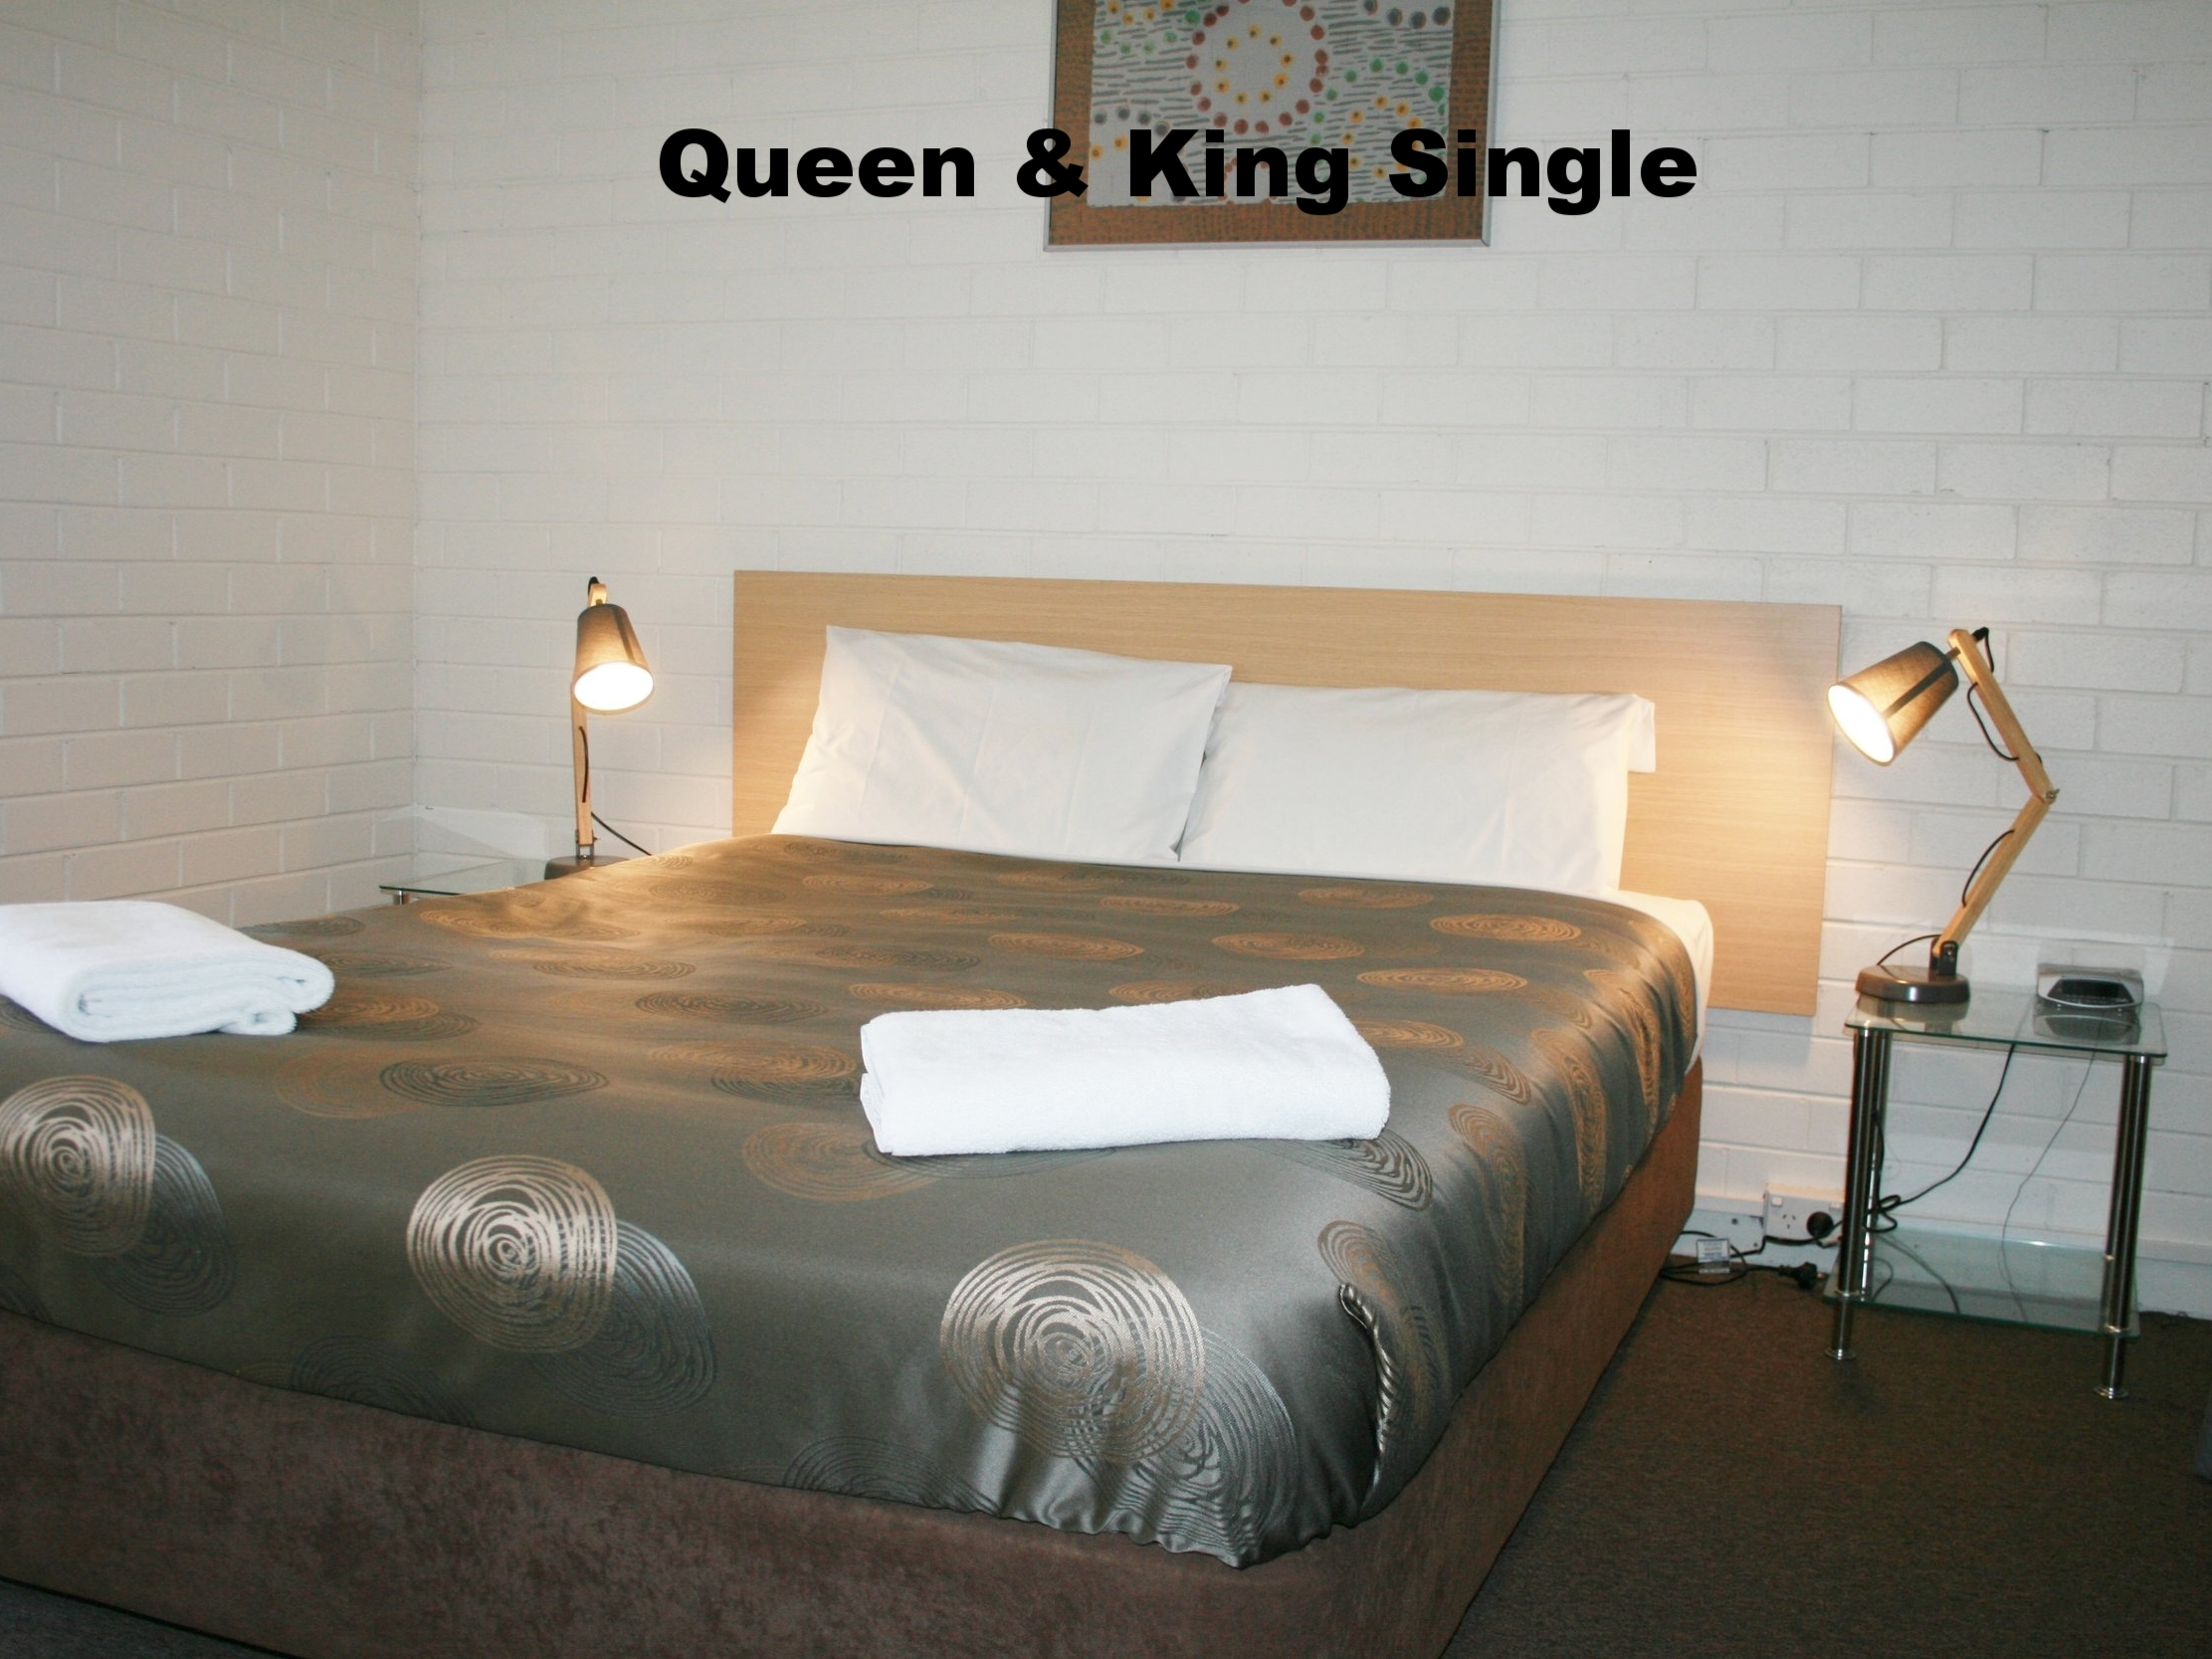 Queen and King Single